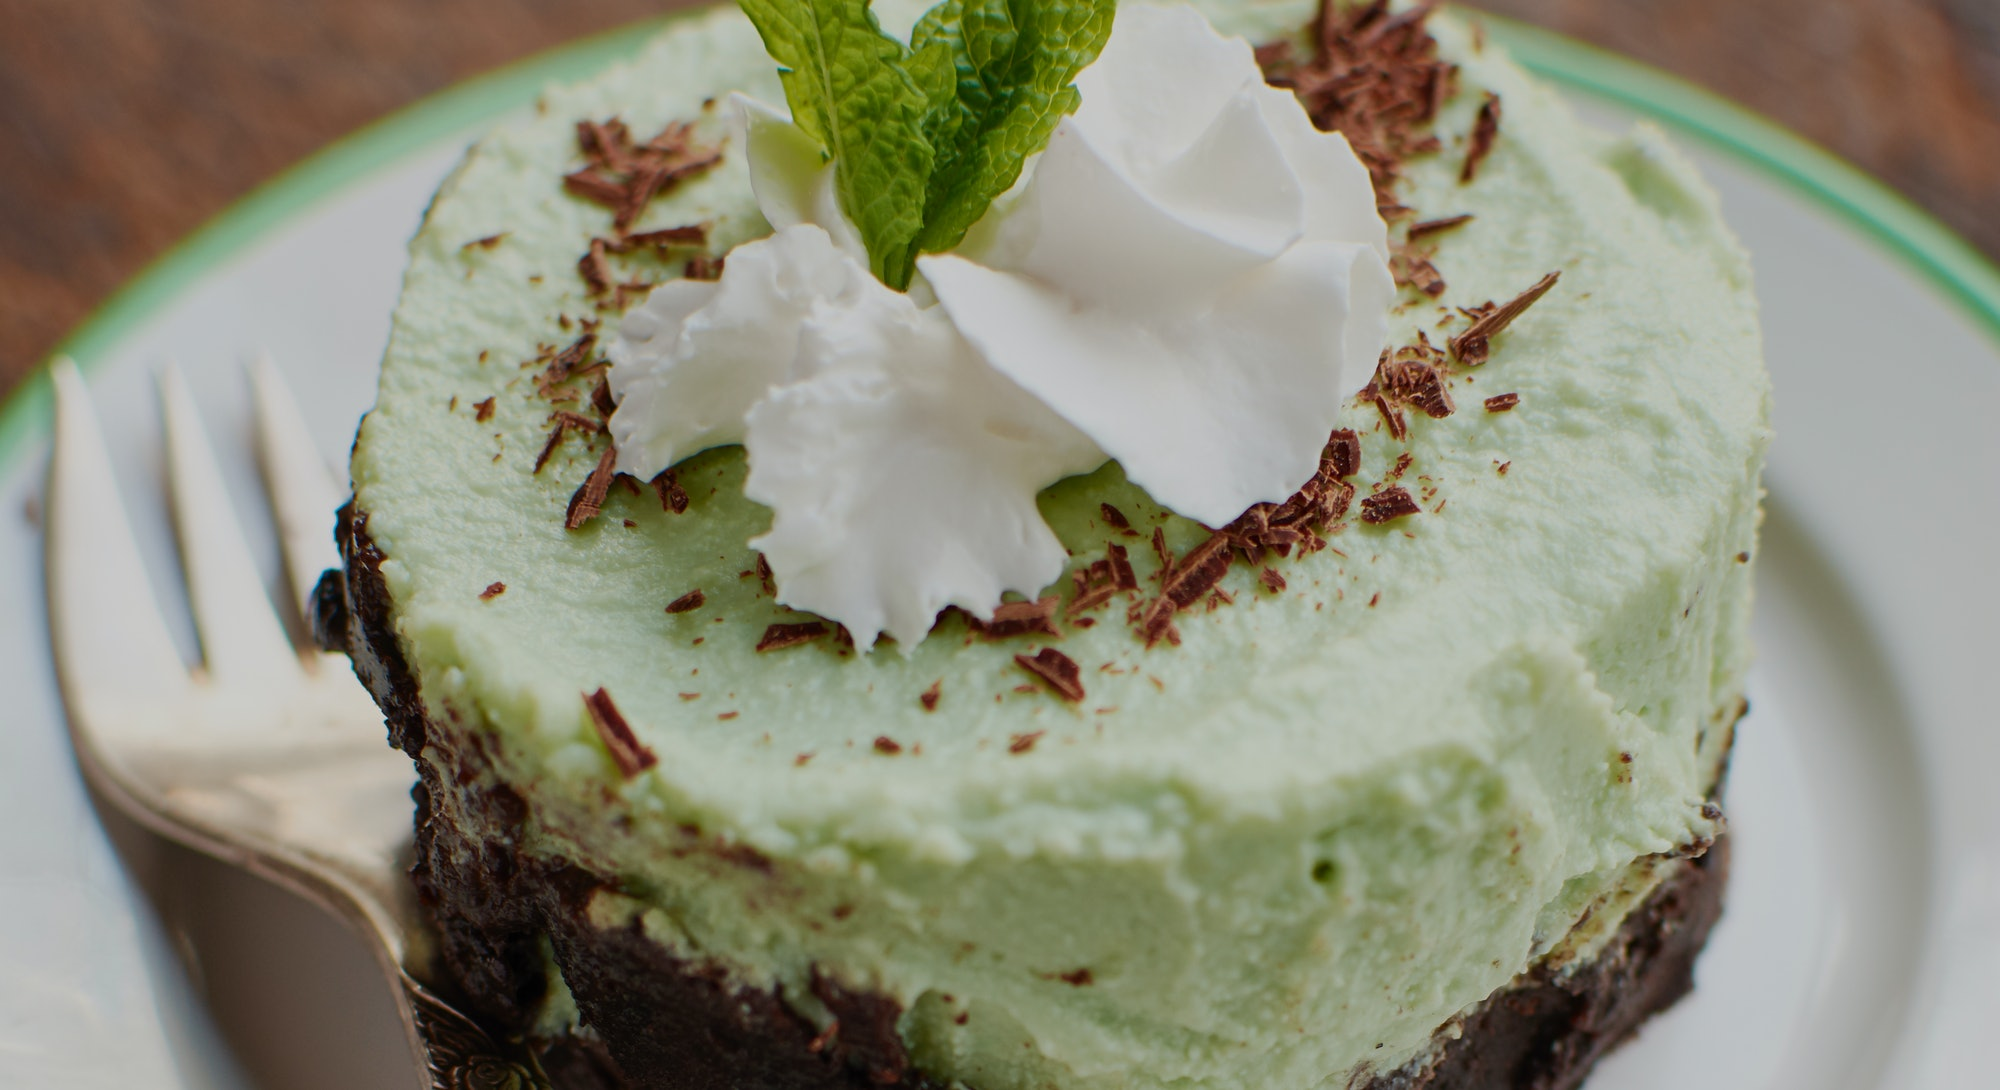 Use green food coloring to make frosting for a cake.